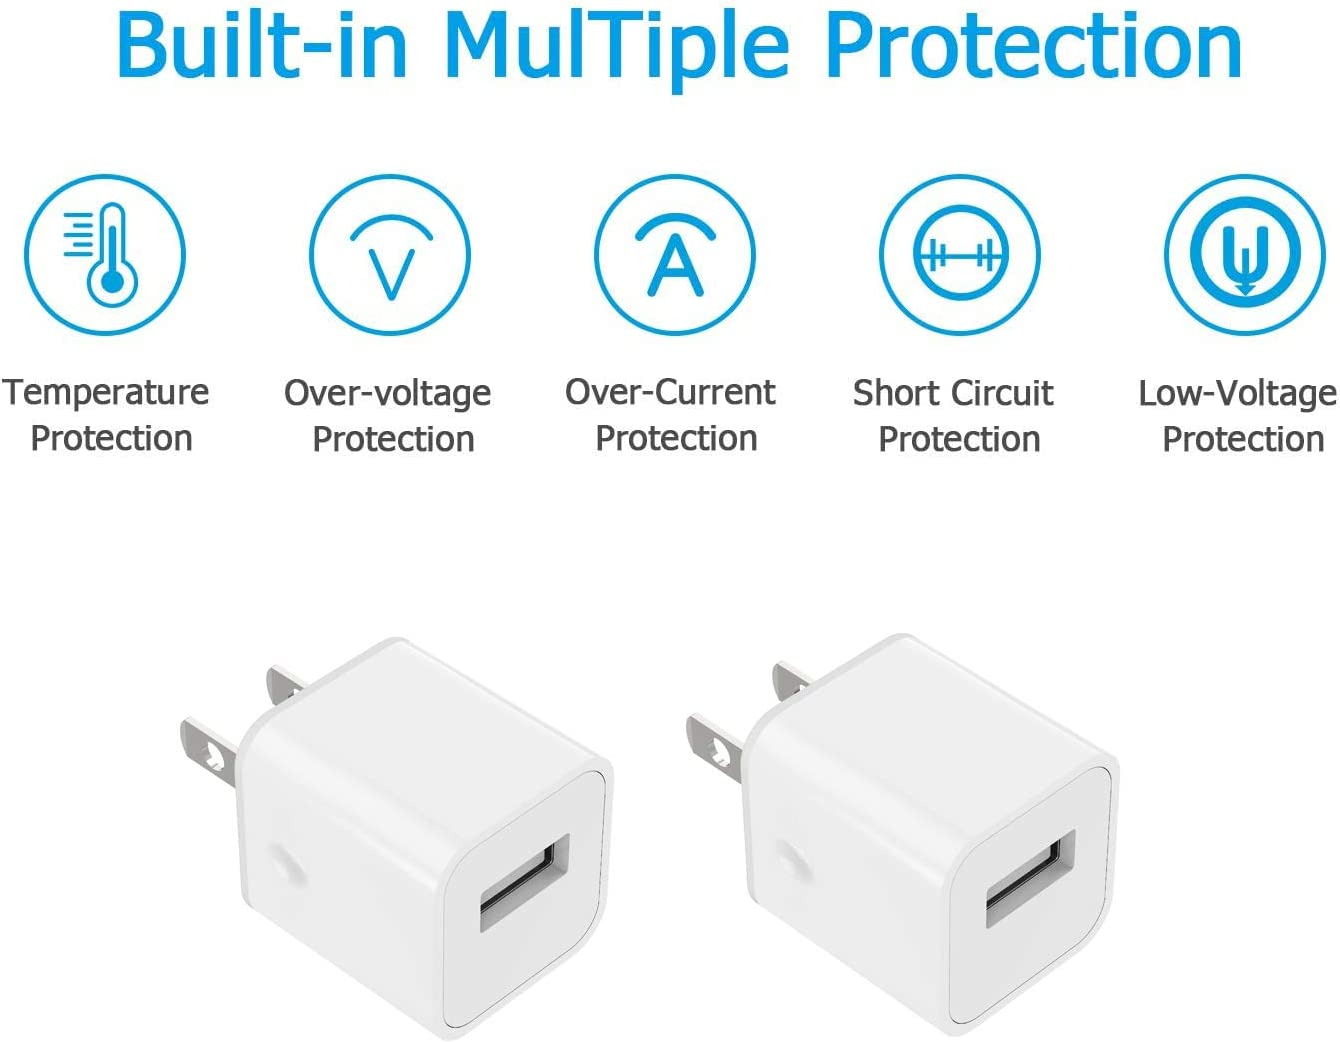 SE 6S iPad Mini 7Plus 6 5C 6S Plus X Xs Max 5S TT/&C USB Wall Charger Adapter Block Fast Charging Certified Lightning Cable【3ft】Cord Data Sync Compatible with iPhone 11 XR 8 8Plus 7 iPod